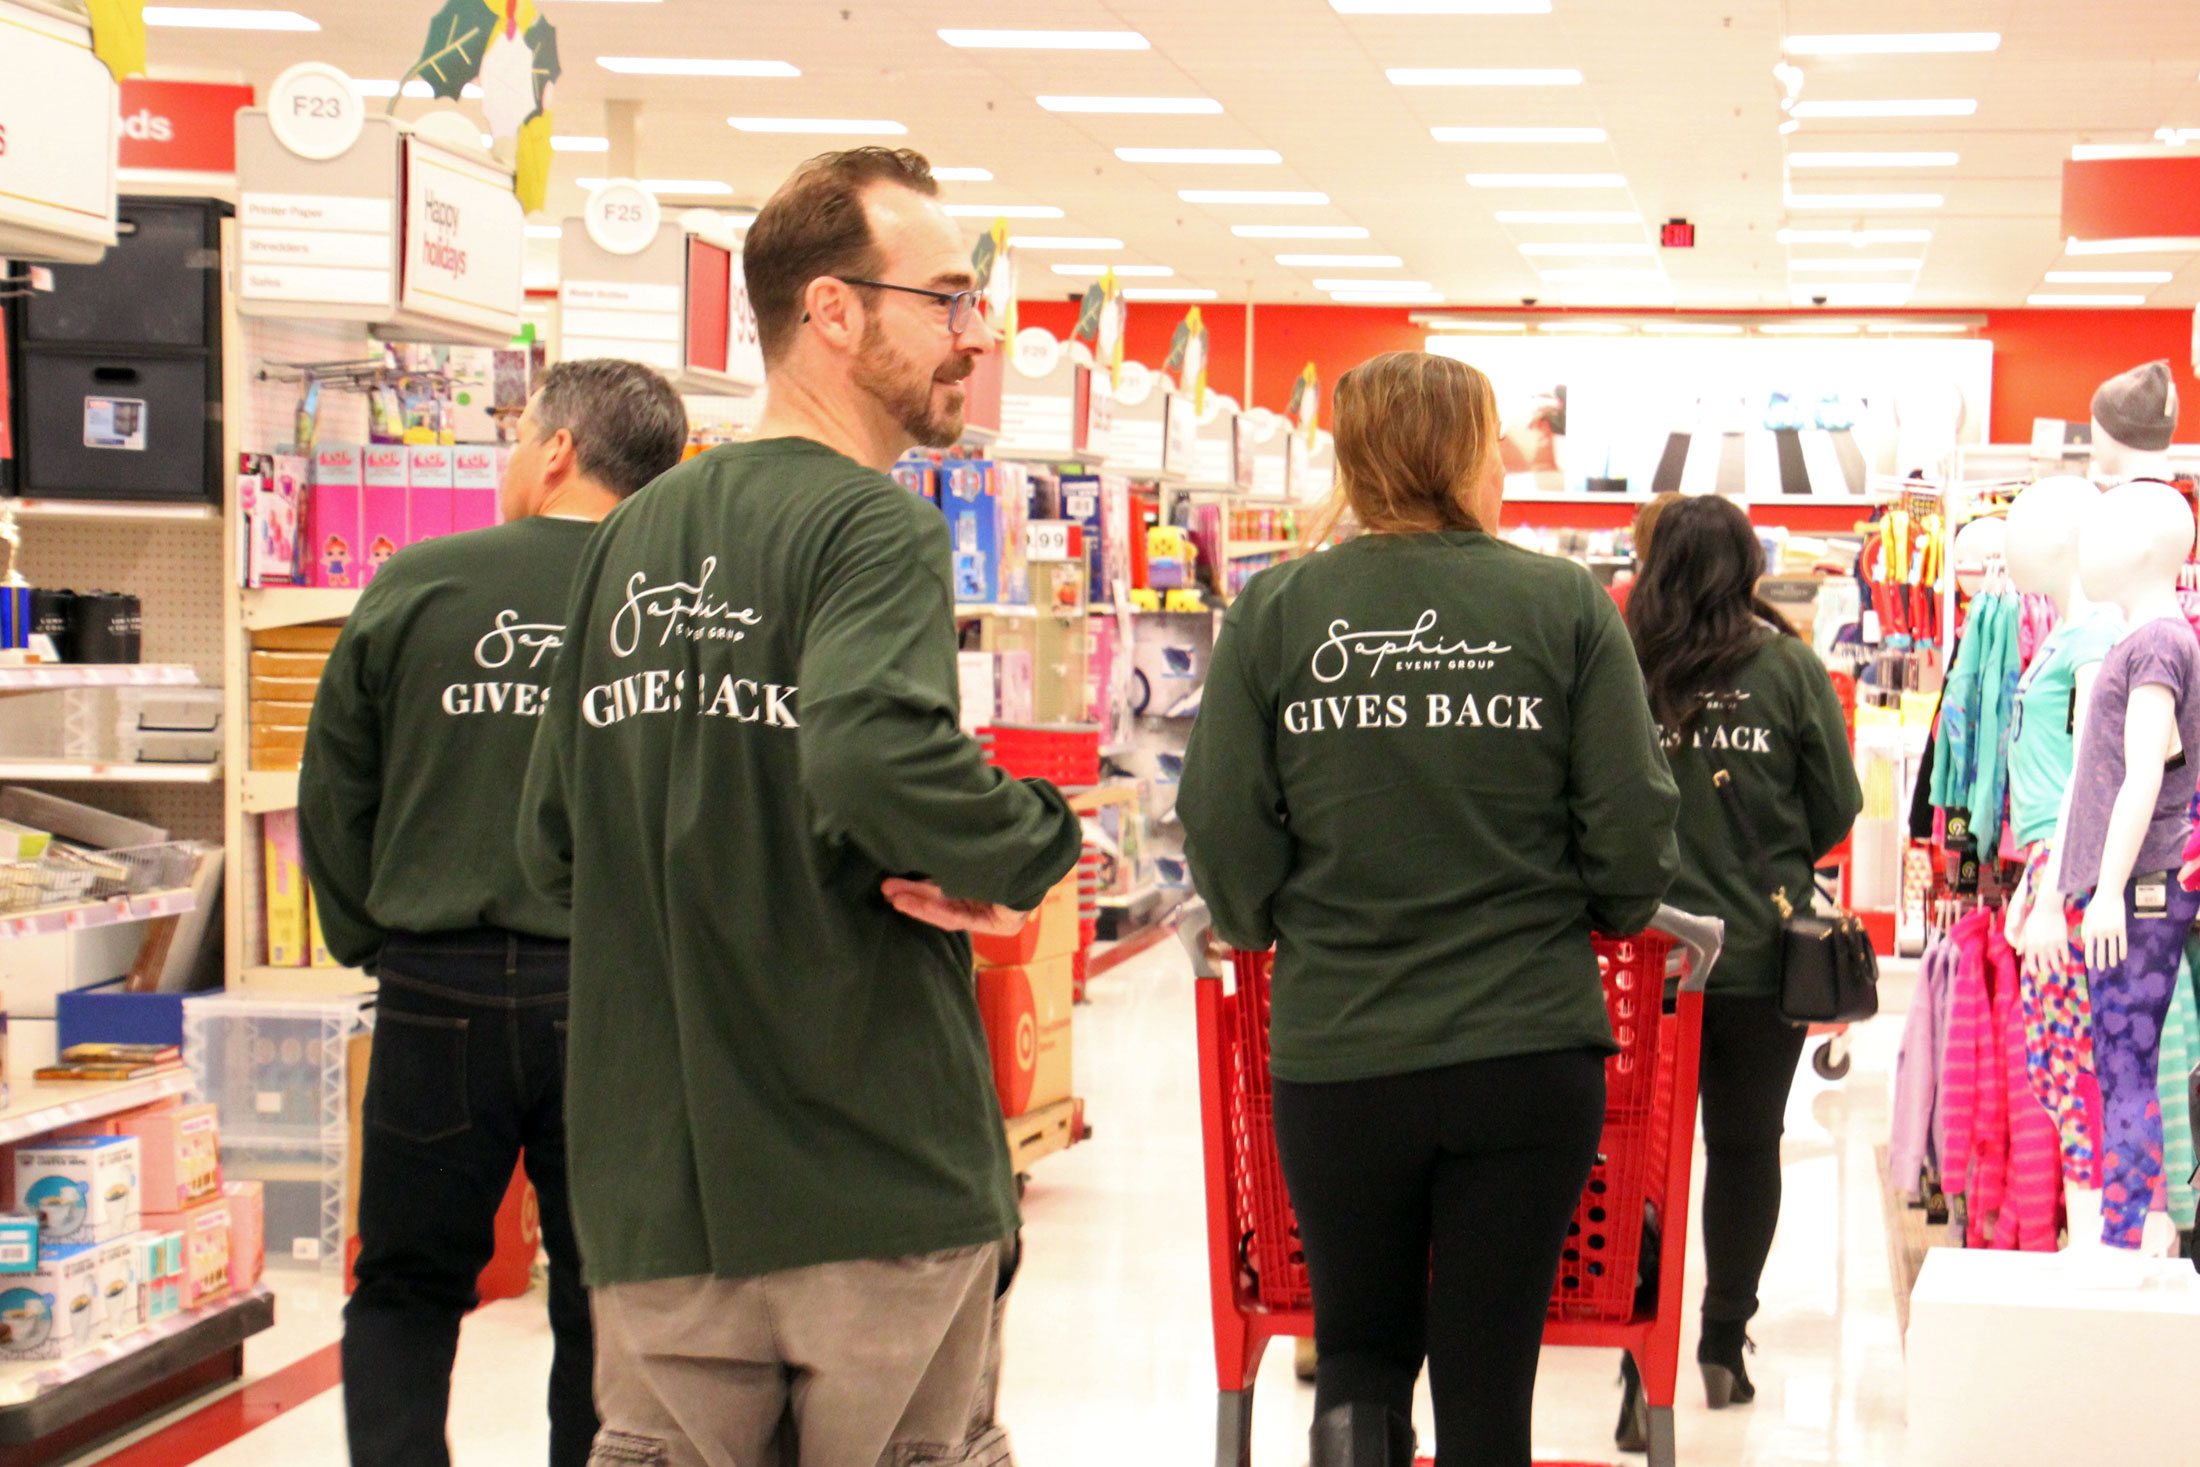 SEG staff searches the aisles at Target for holiday gifts